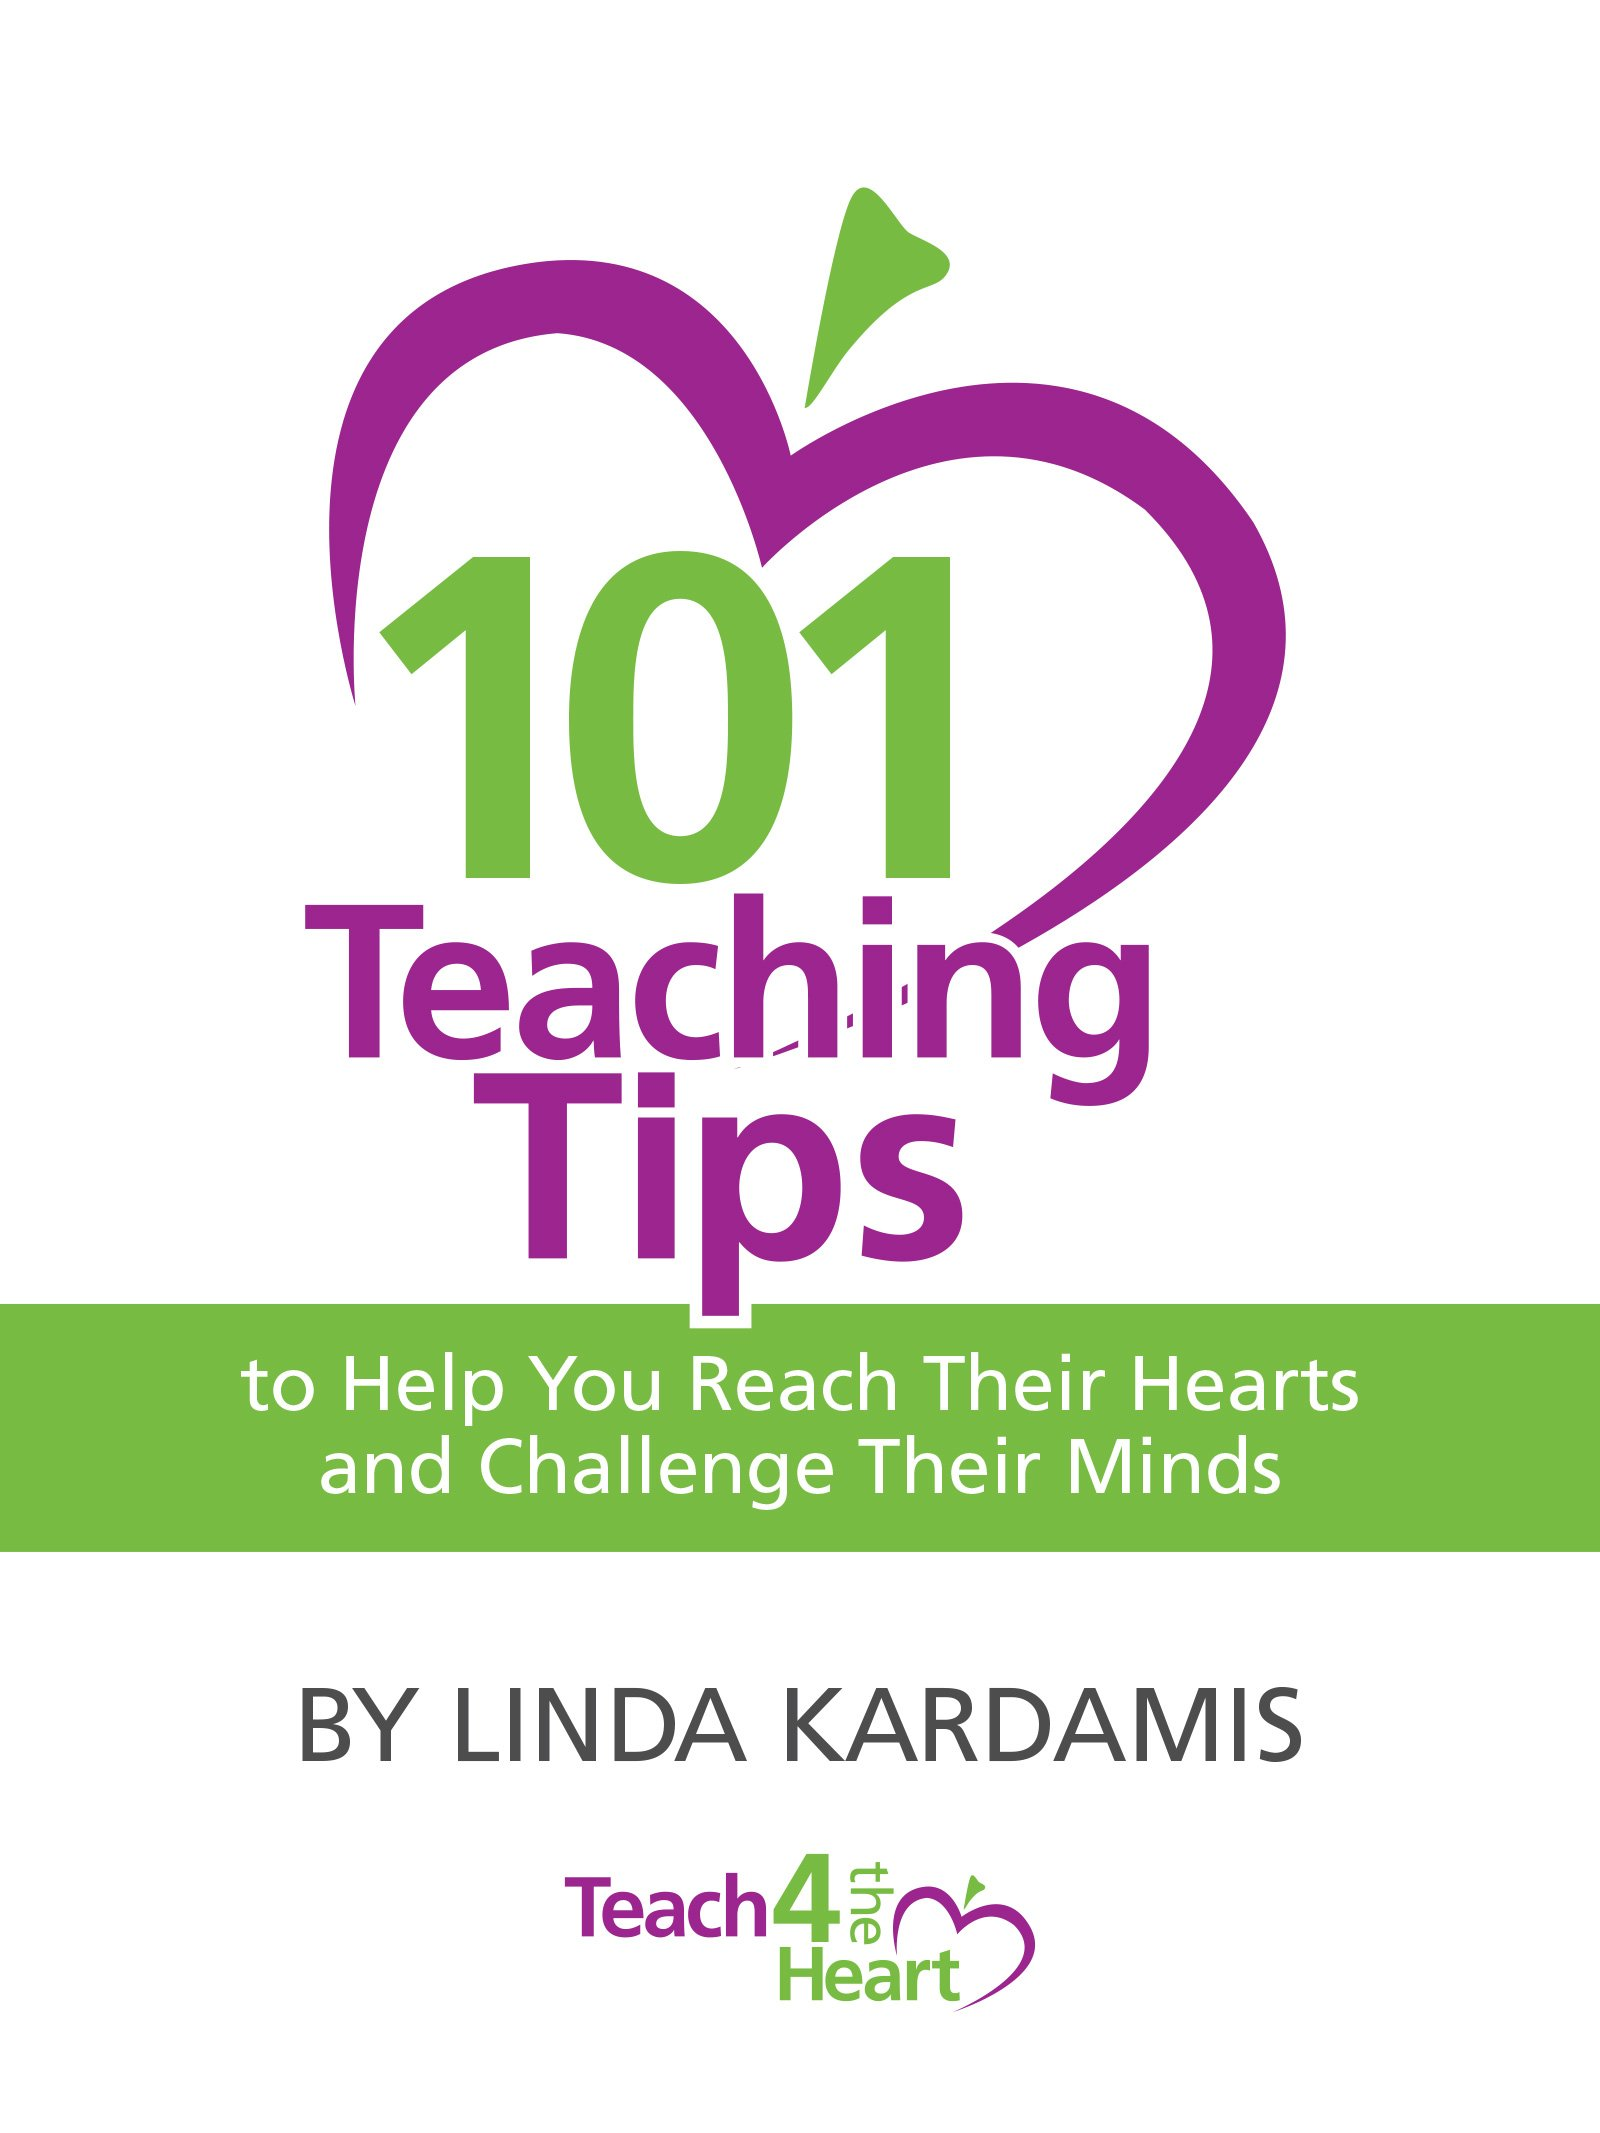 101 Teaching Tips to Reach Their Hearts and Challenge Their Minds